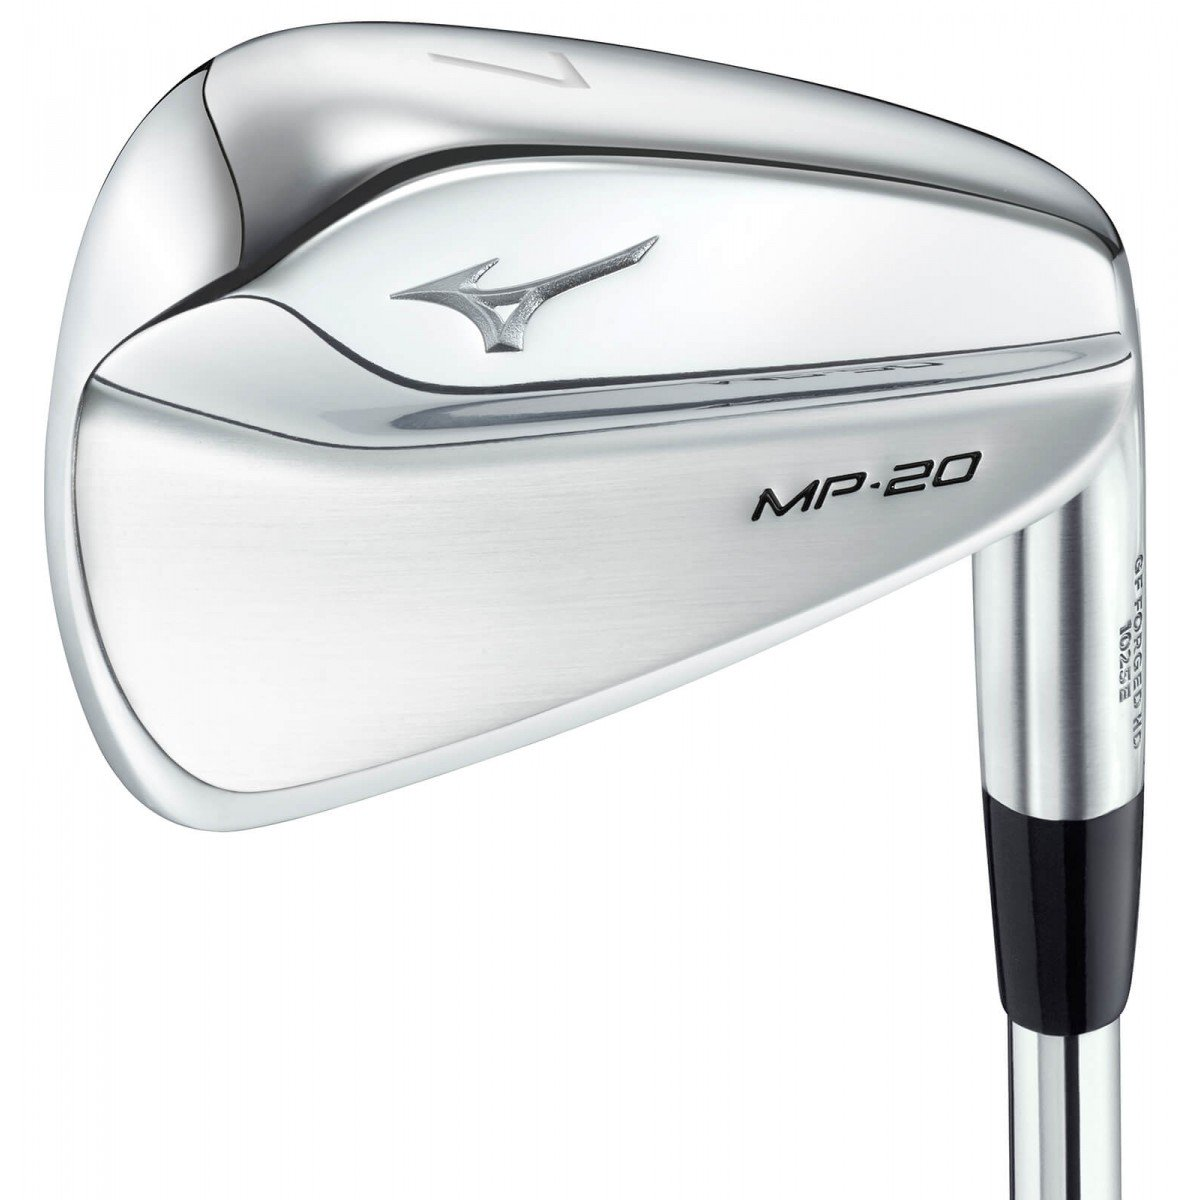 Mizuno MP-20 Irons (3-PW)